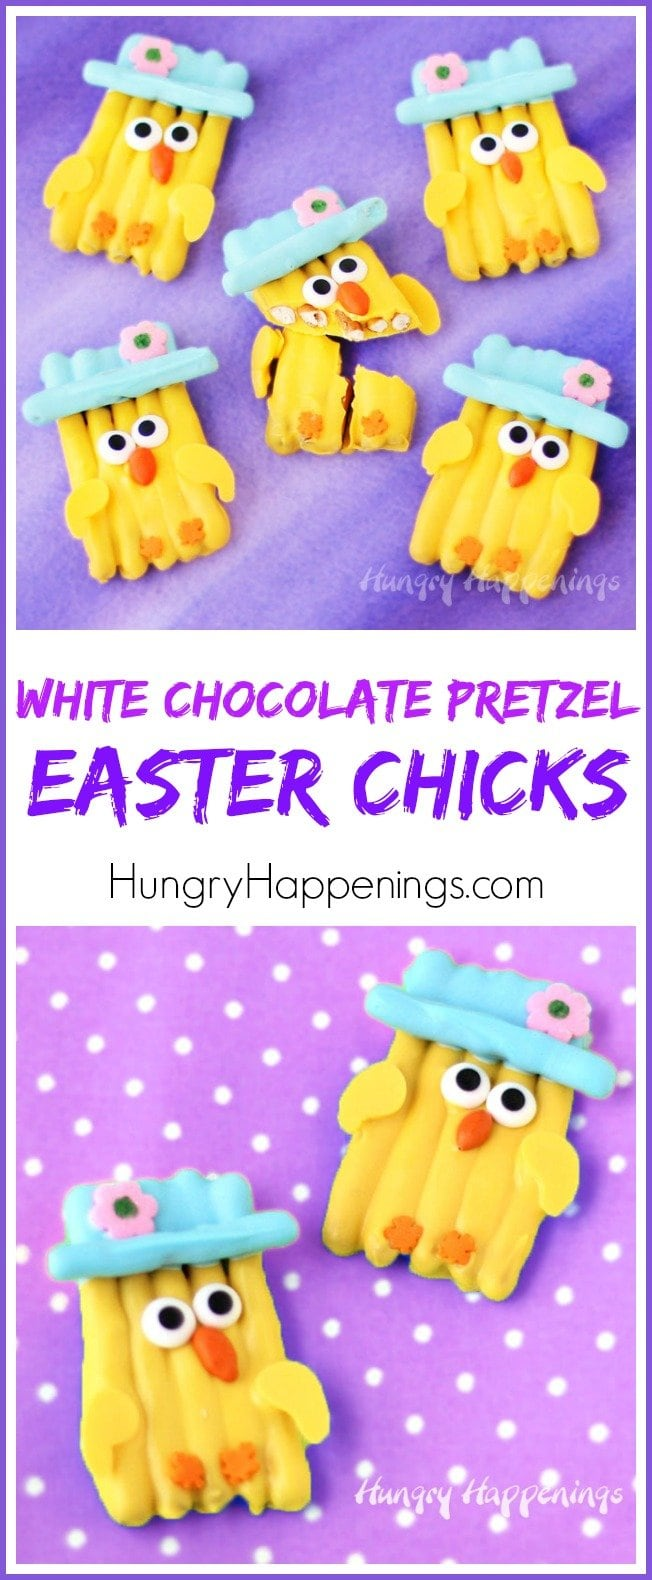 Adorably cute White Chocolate Pretzel Easter Chicks are perfect treats to add to your Easter baskets.